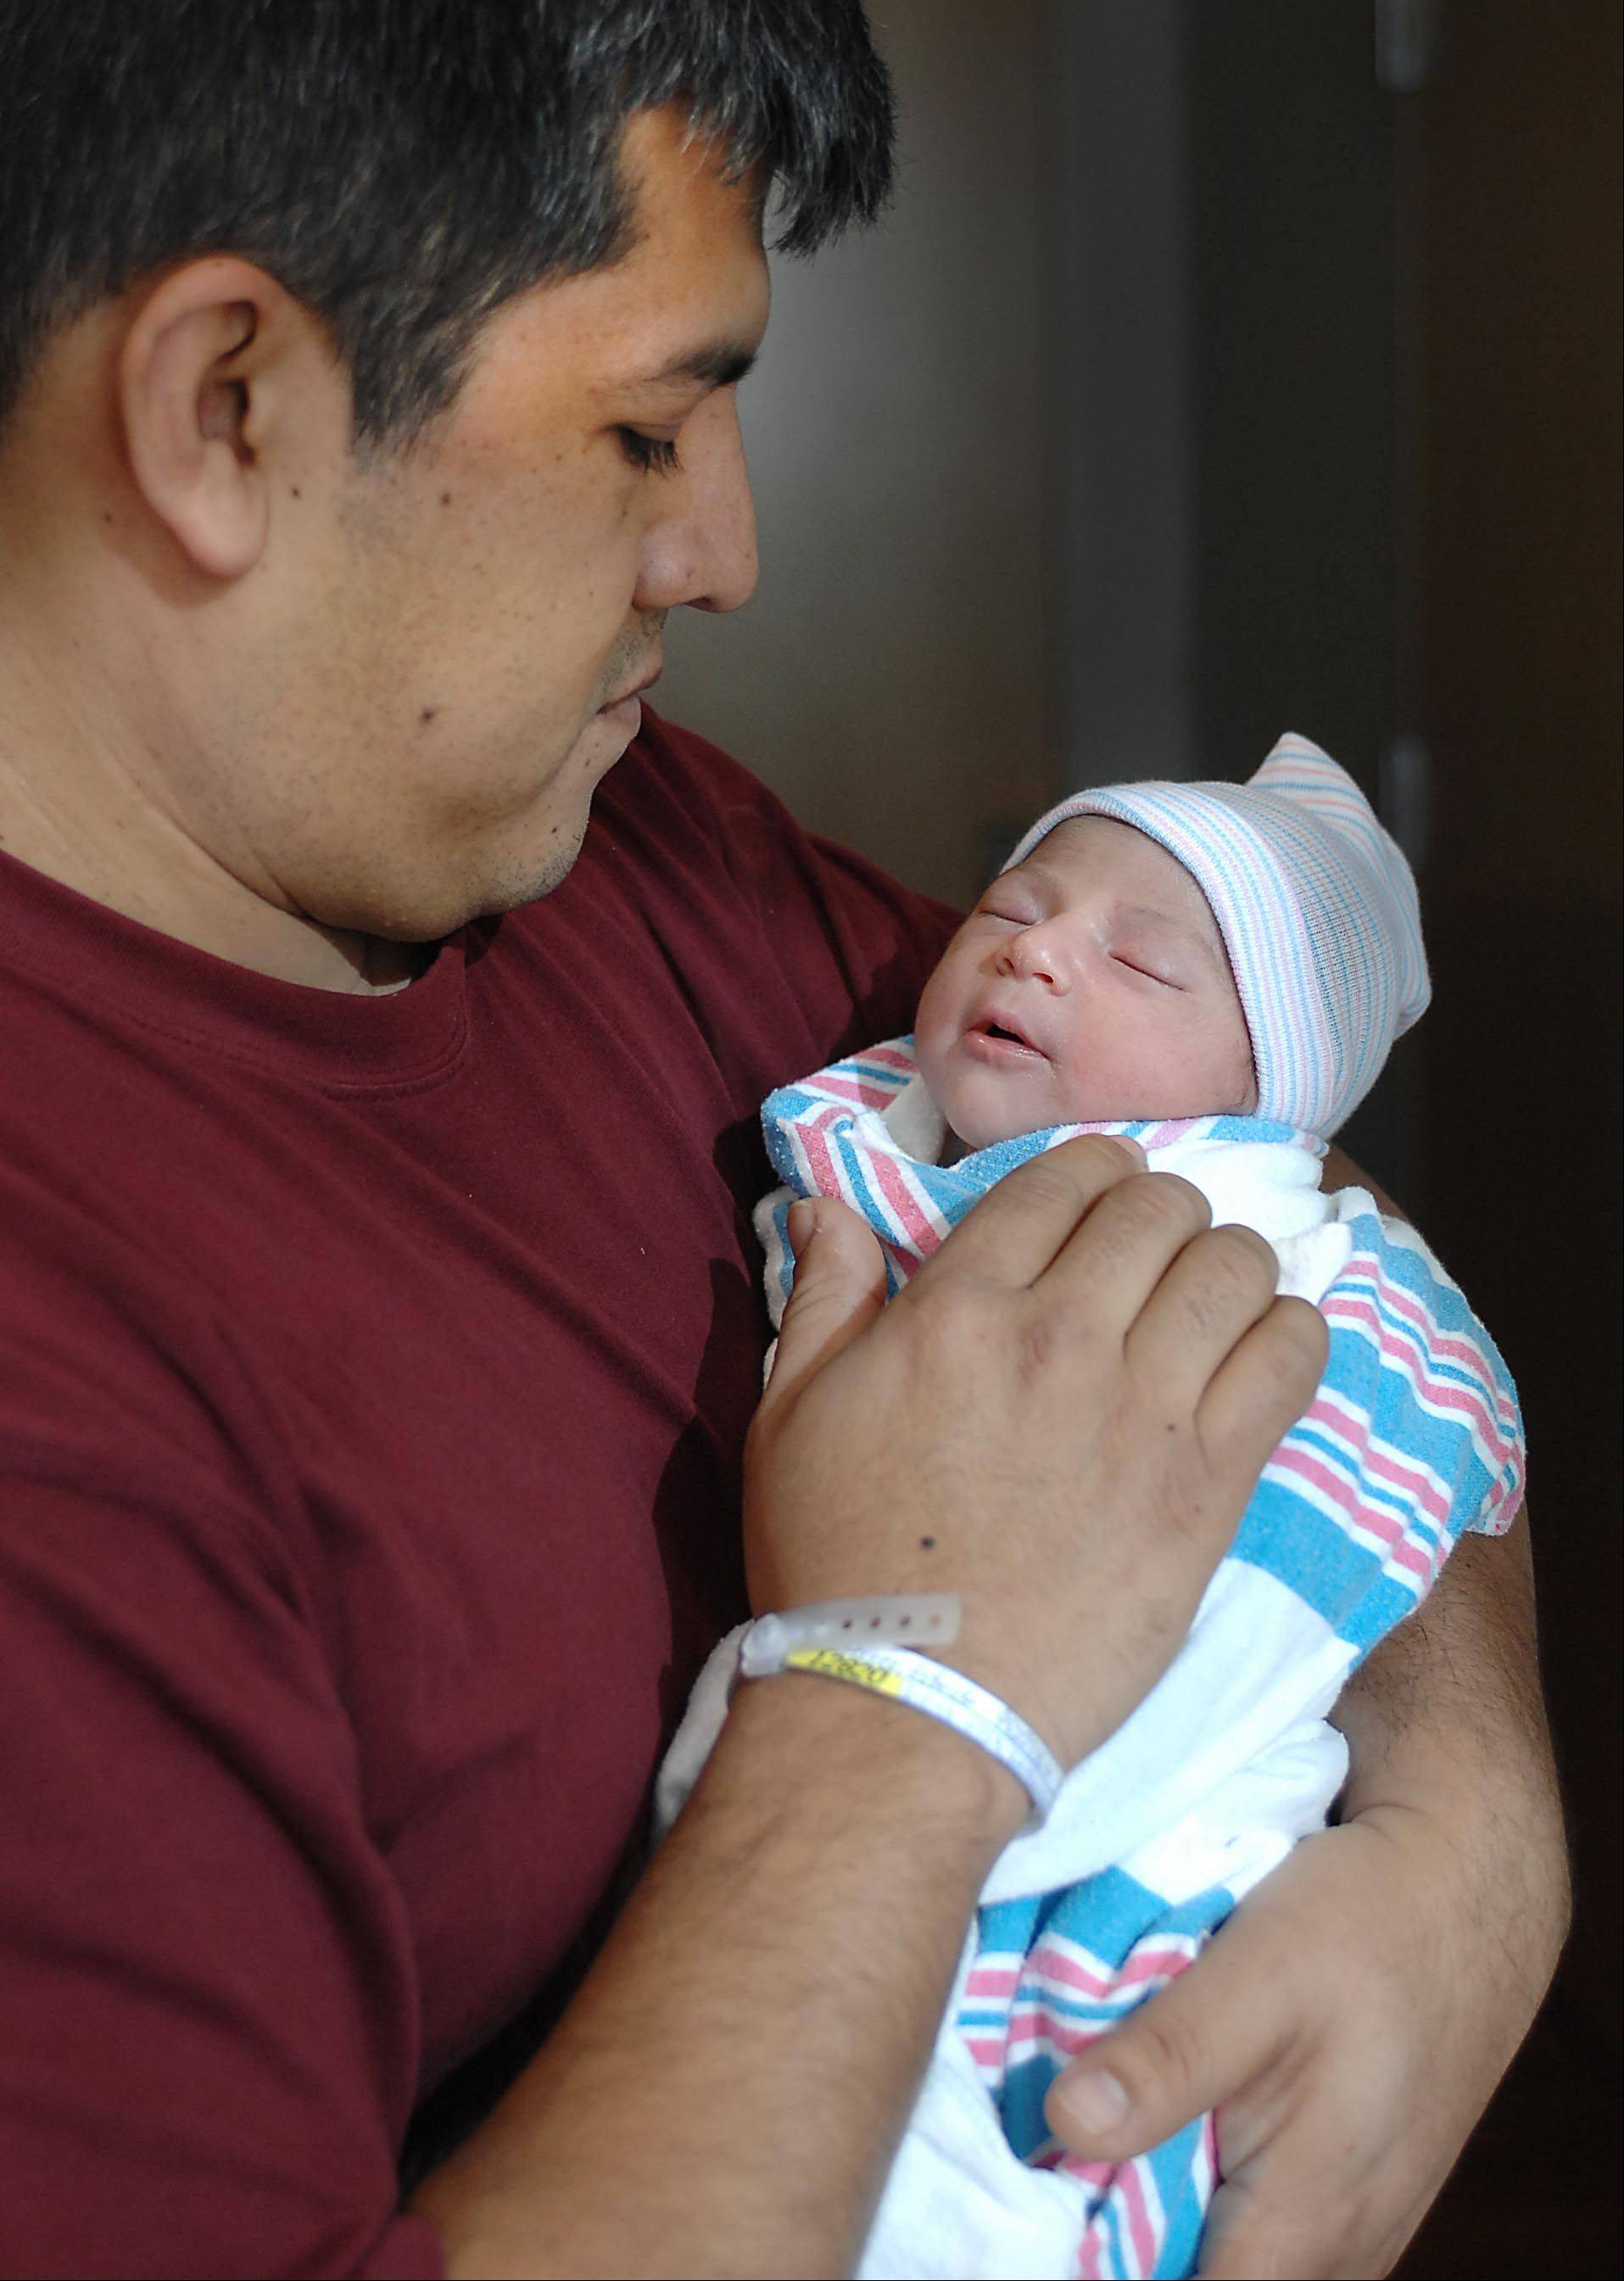 Daniel Hernandez of Algonquin holds his daughter Isabel, the first baby born in Kane County in 2013. She weighed 6 pounds, 1 ounce and was 19 inches long. She was born to Esbeide Gutierrez and her husband, Daniel Hernandez at Sherman Hospital in Elgin at 8:43 Tuesday morning.